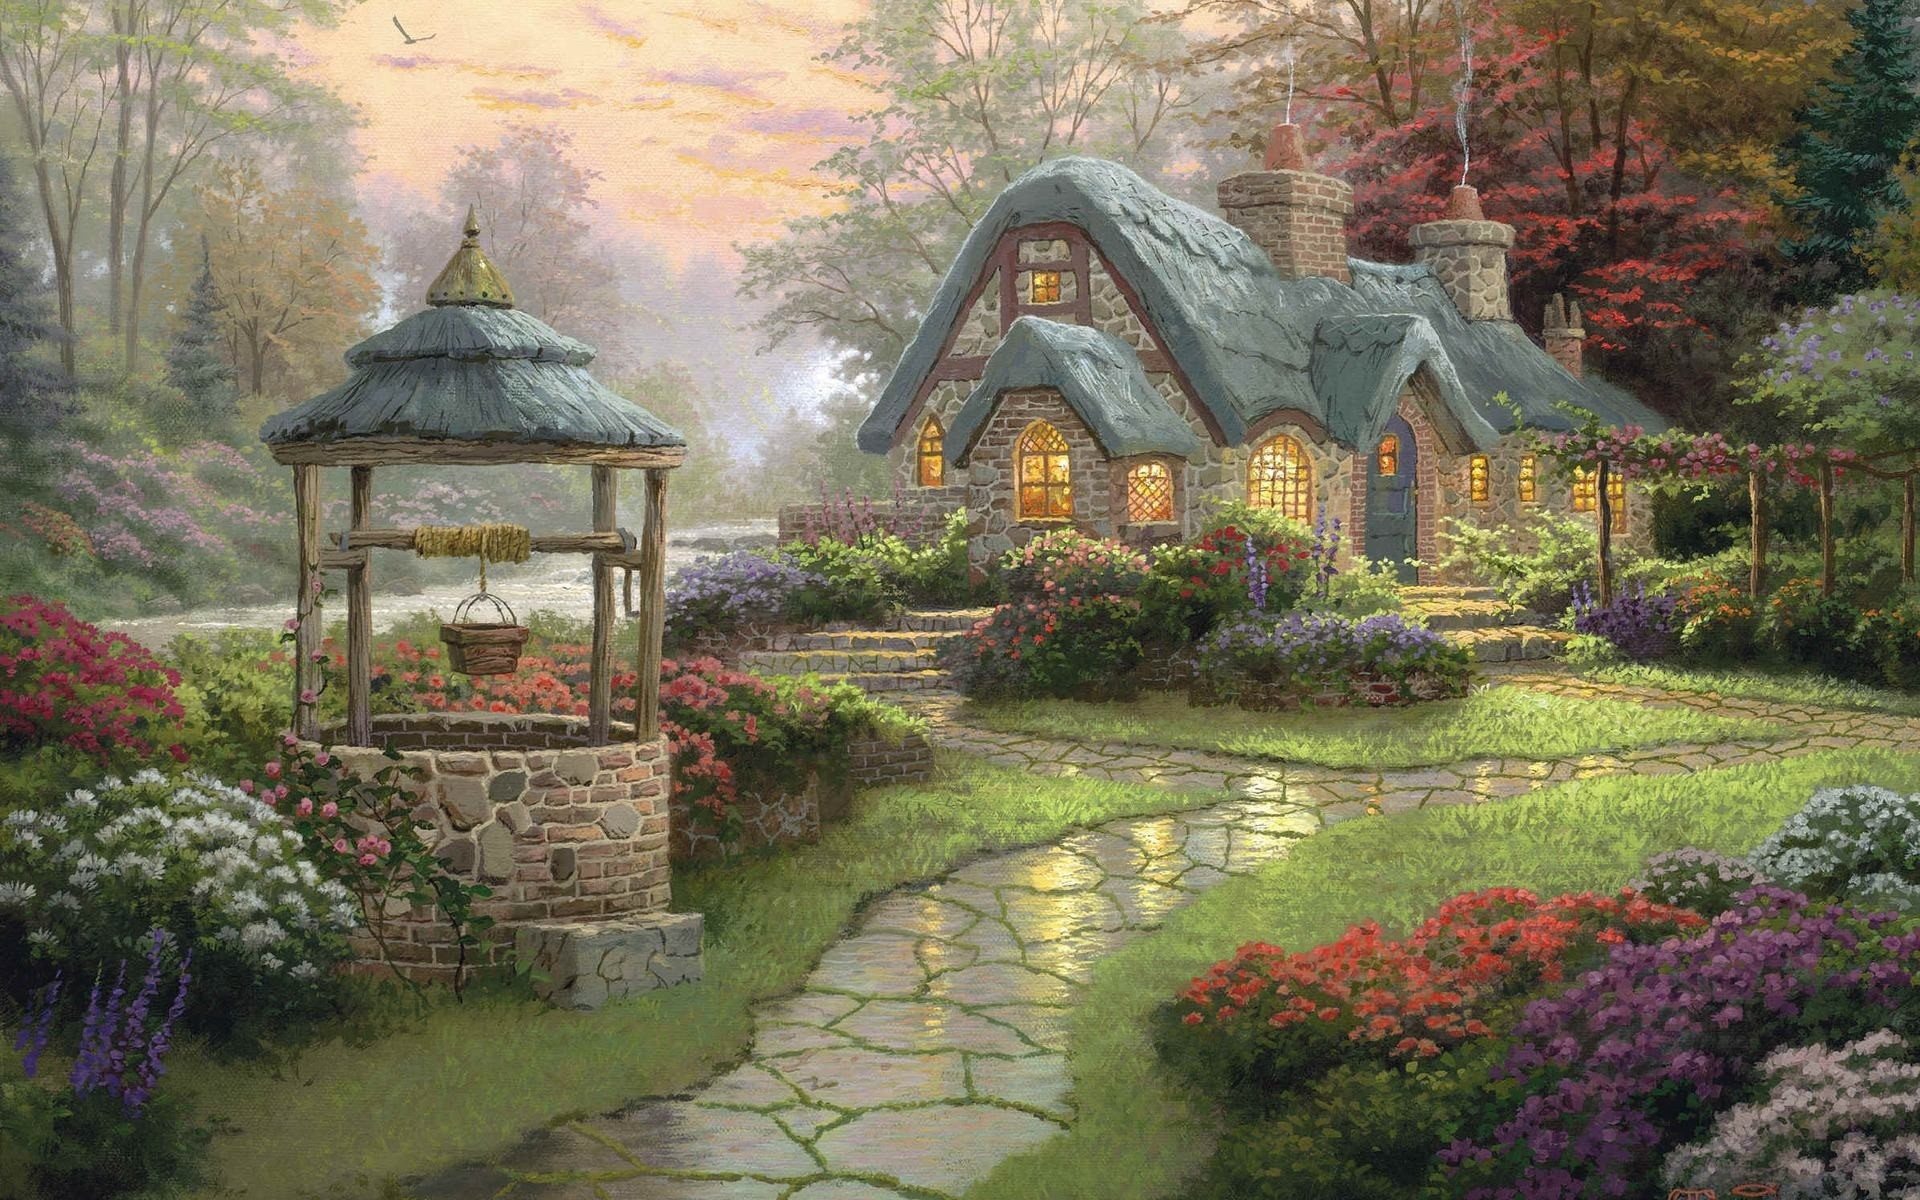 1920x1200 Wallpapers Backgrounds - landscape painting cottage wood flowers kinkade  thomas wallpapers